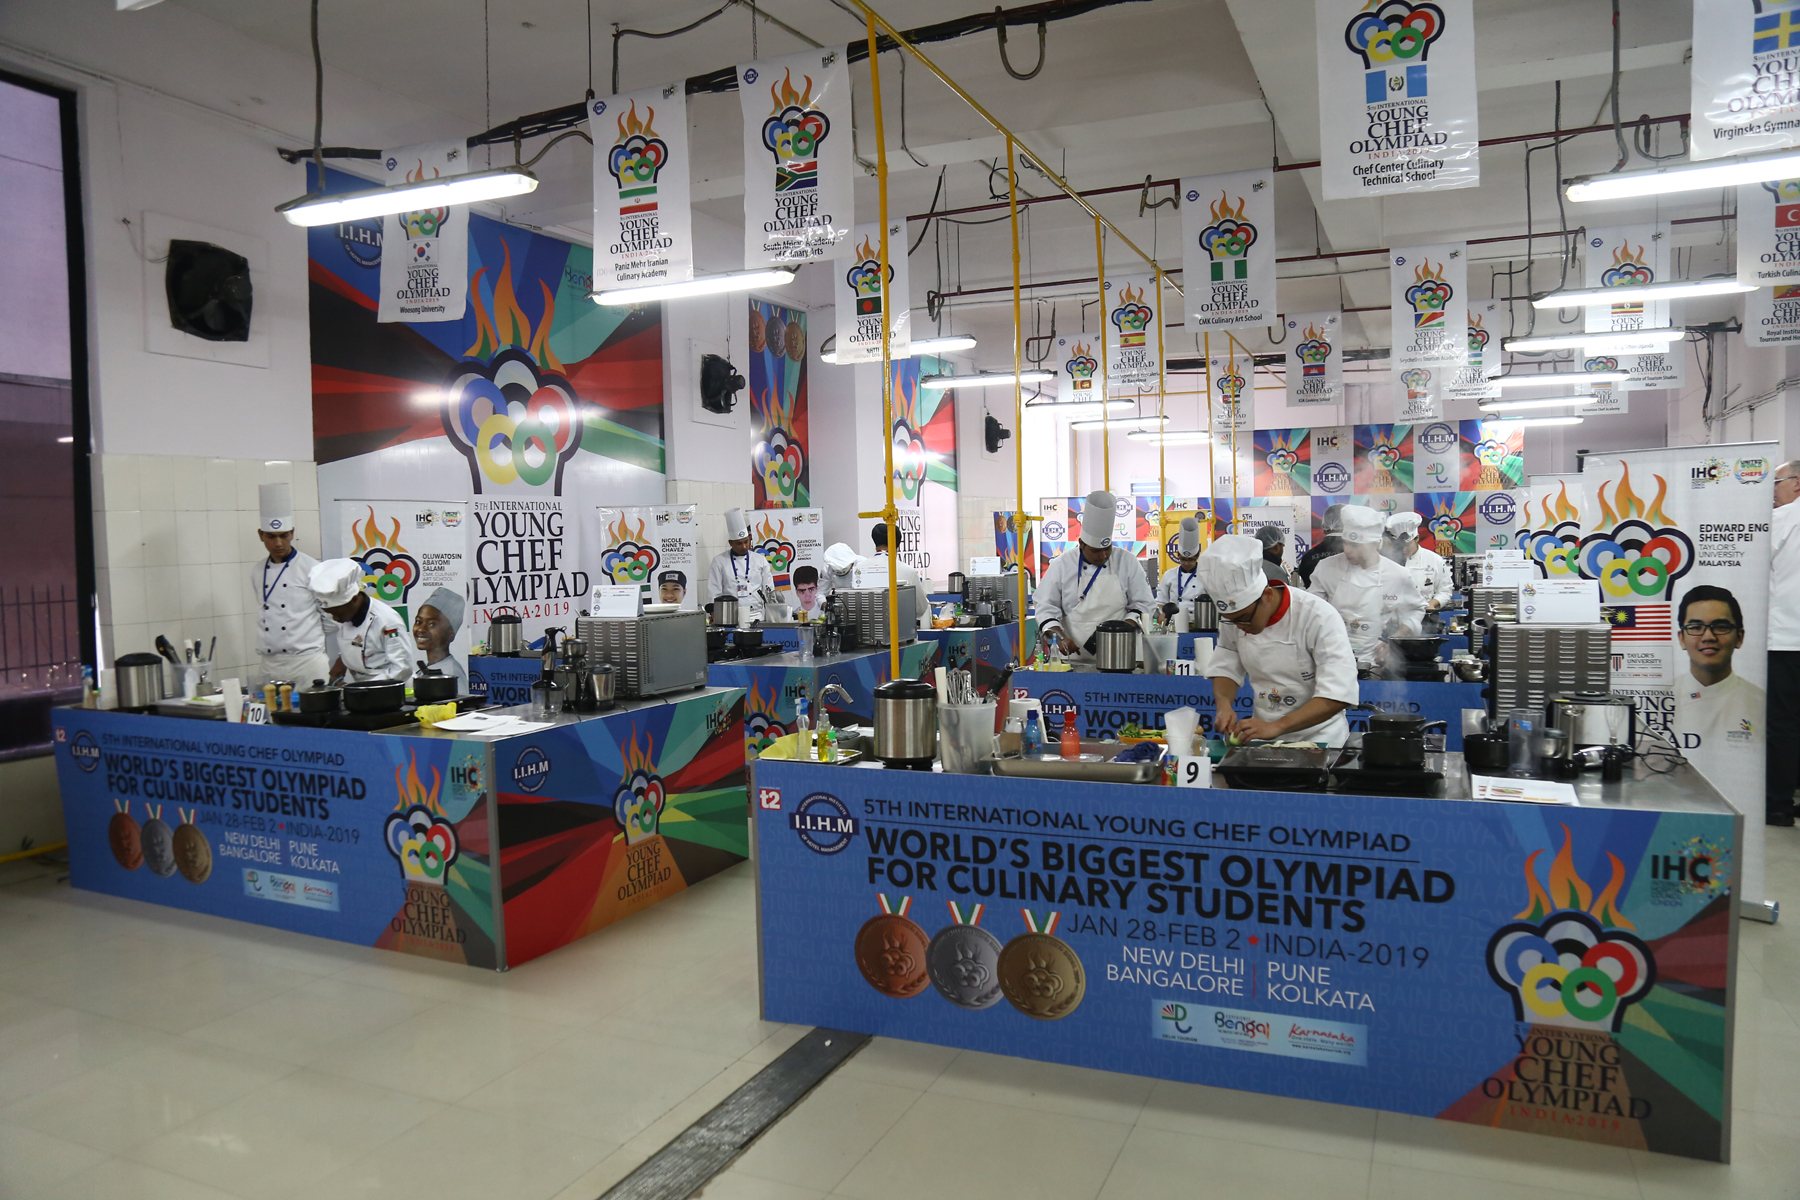 Cyrene Randrianasolo From France Wins 5th International Young Chef Olympiad